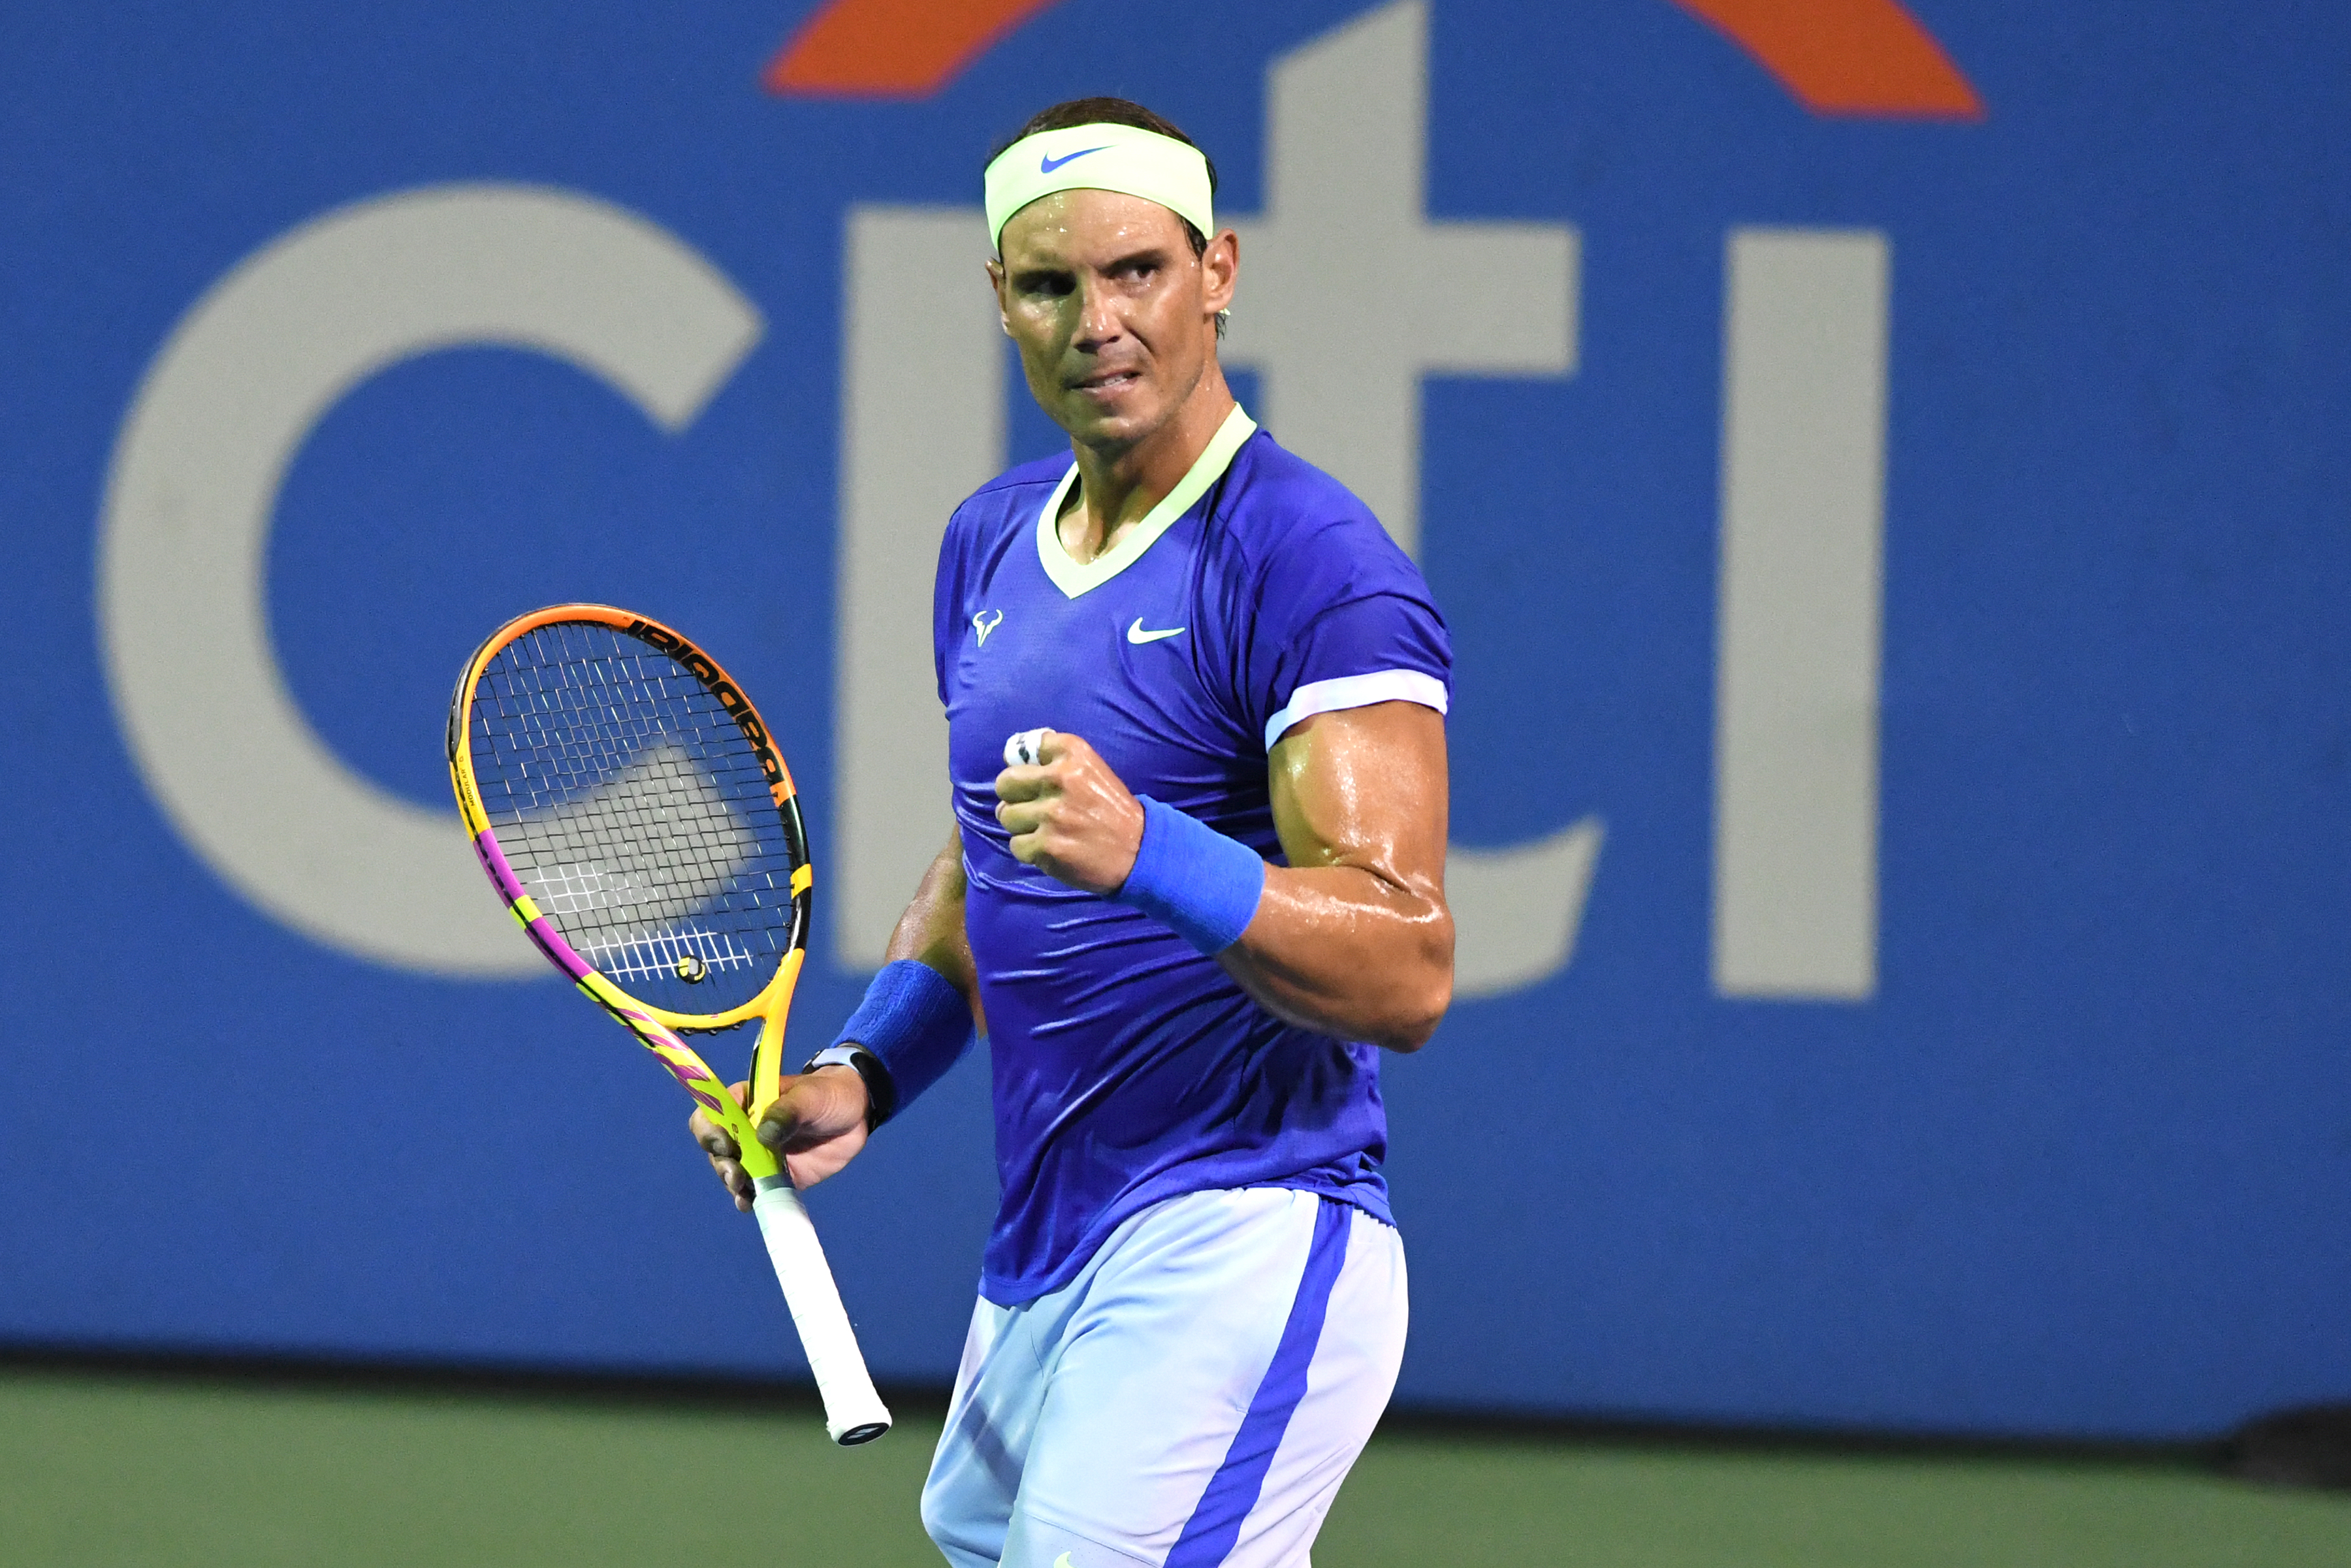 Rafael Nadal of Spain celebrates a shot during a match against Lloyd Harris of South Africa on Day 6 during the Citi Open at Rock Creek Tennis Center on August 5, 2021 in Washington, DC.